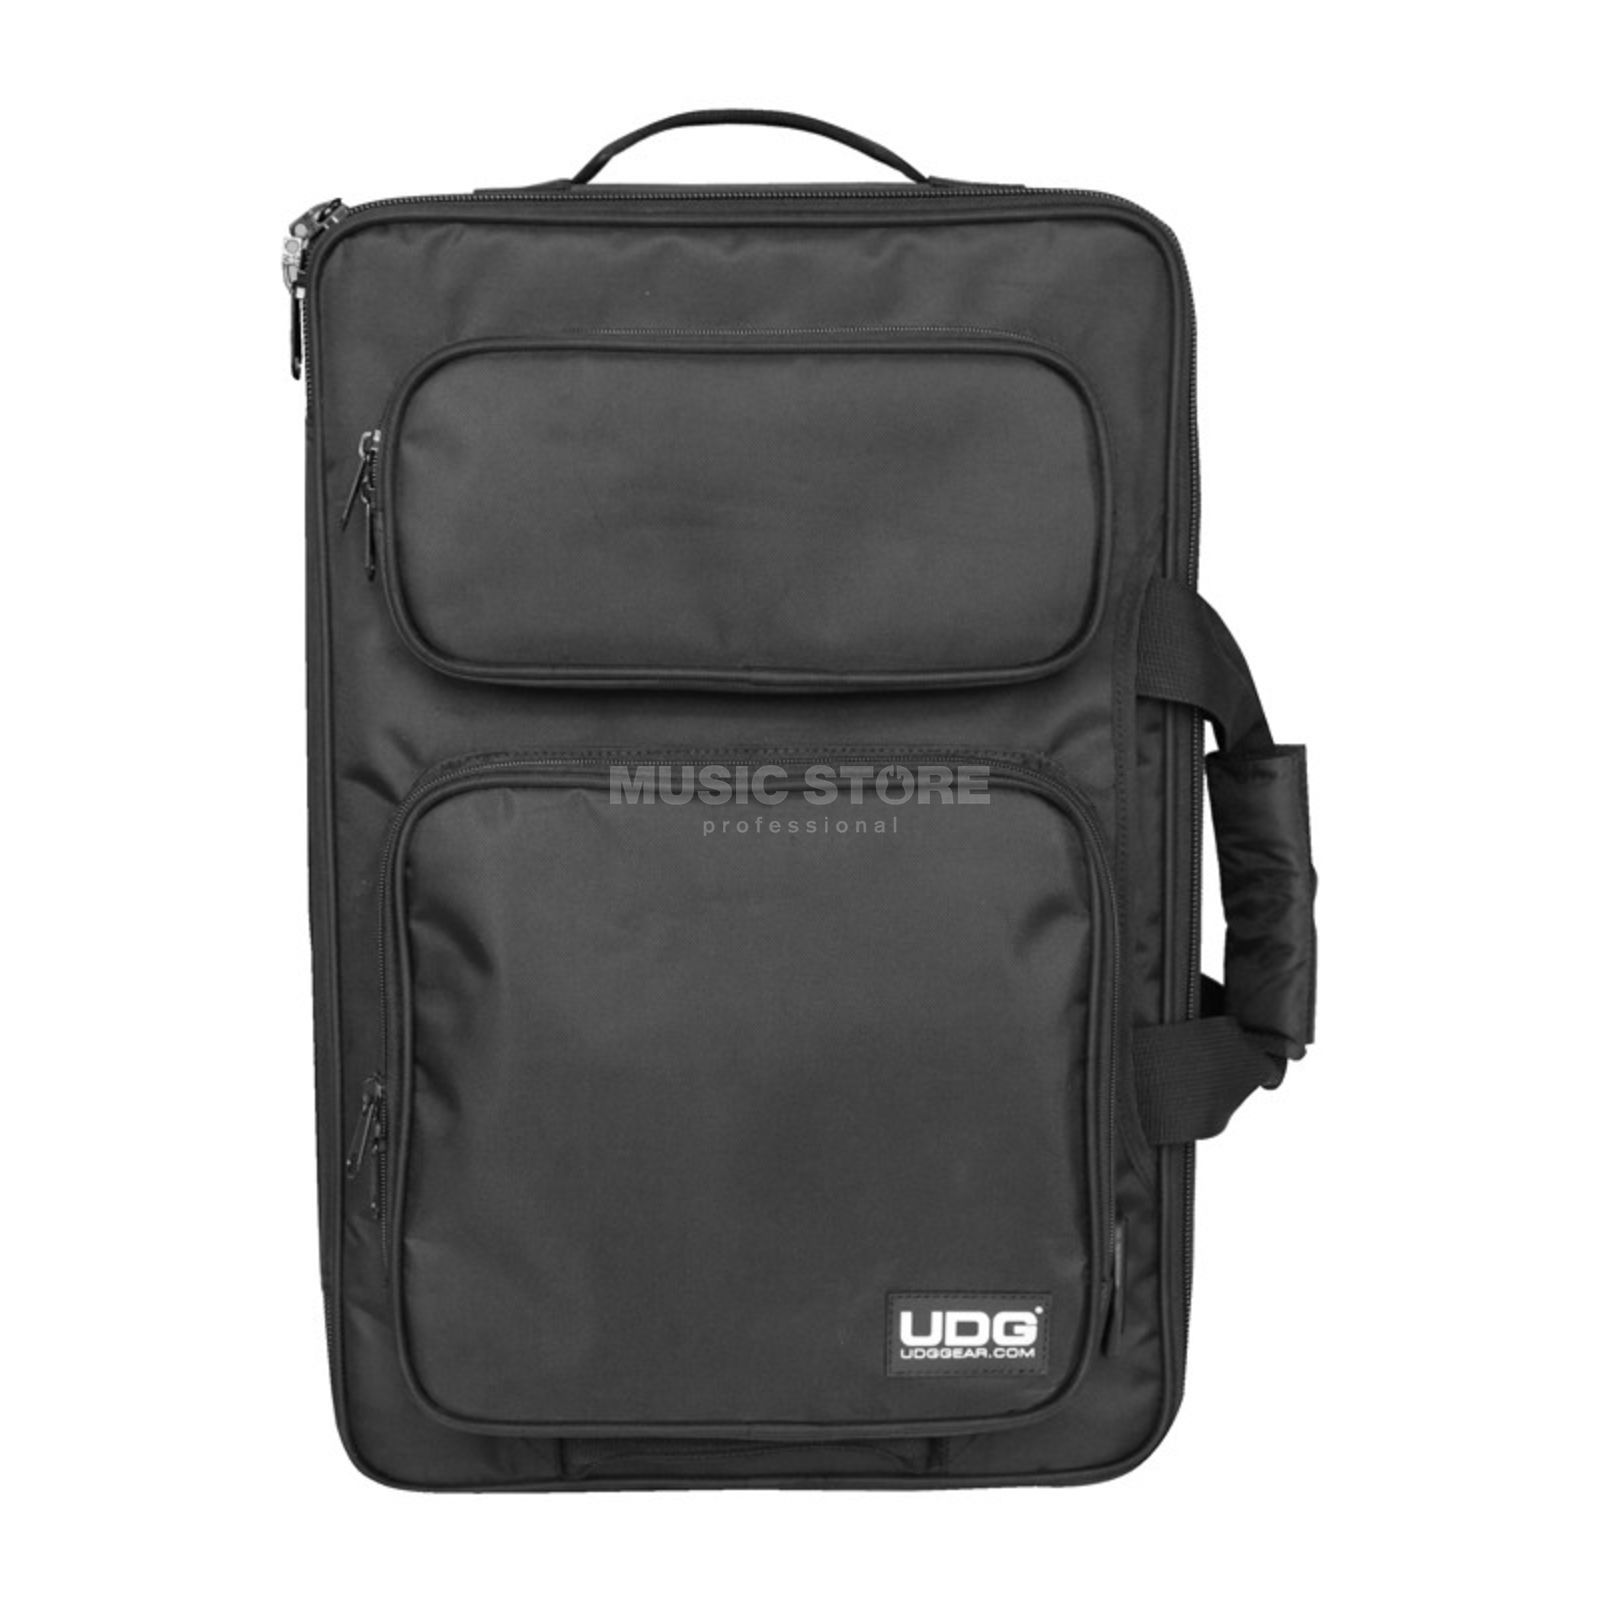 UDG NI-S4 Midi Controller Backpack Black/Orange (U9103BL/OR) Immagine prodotto